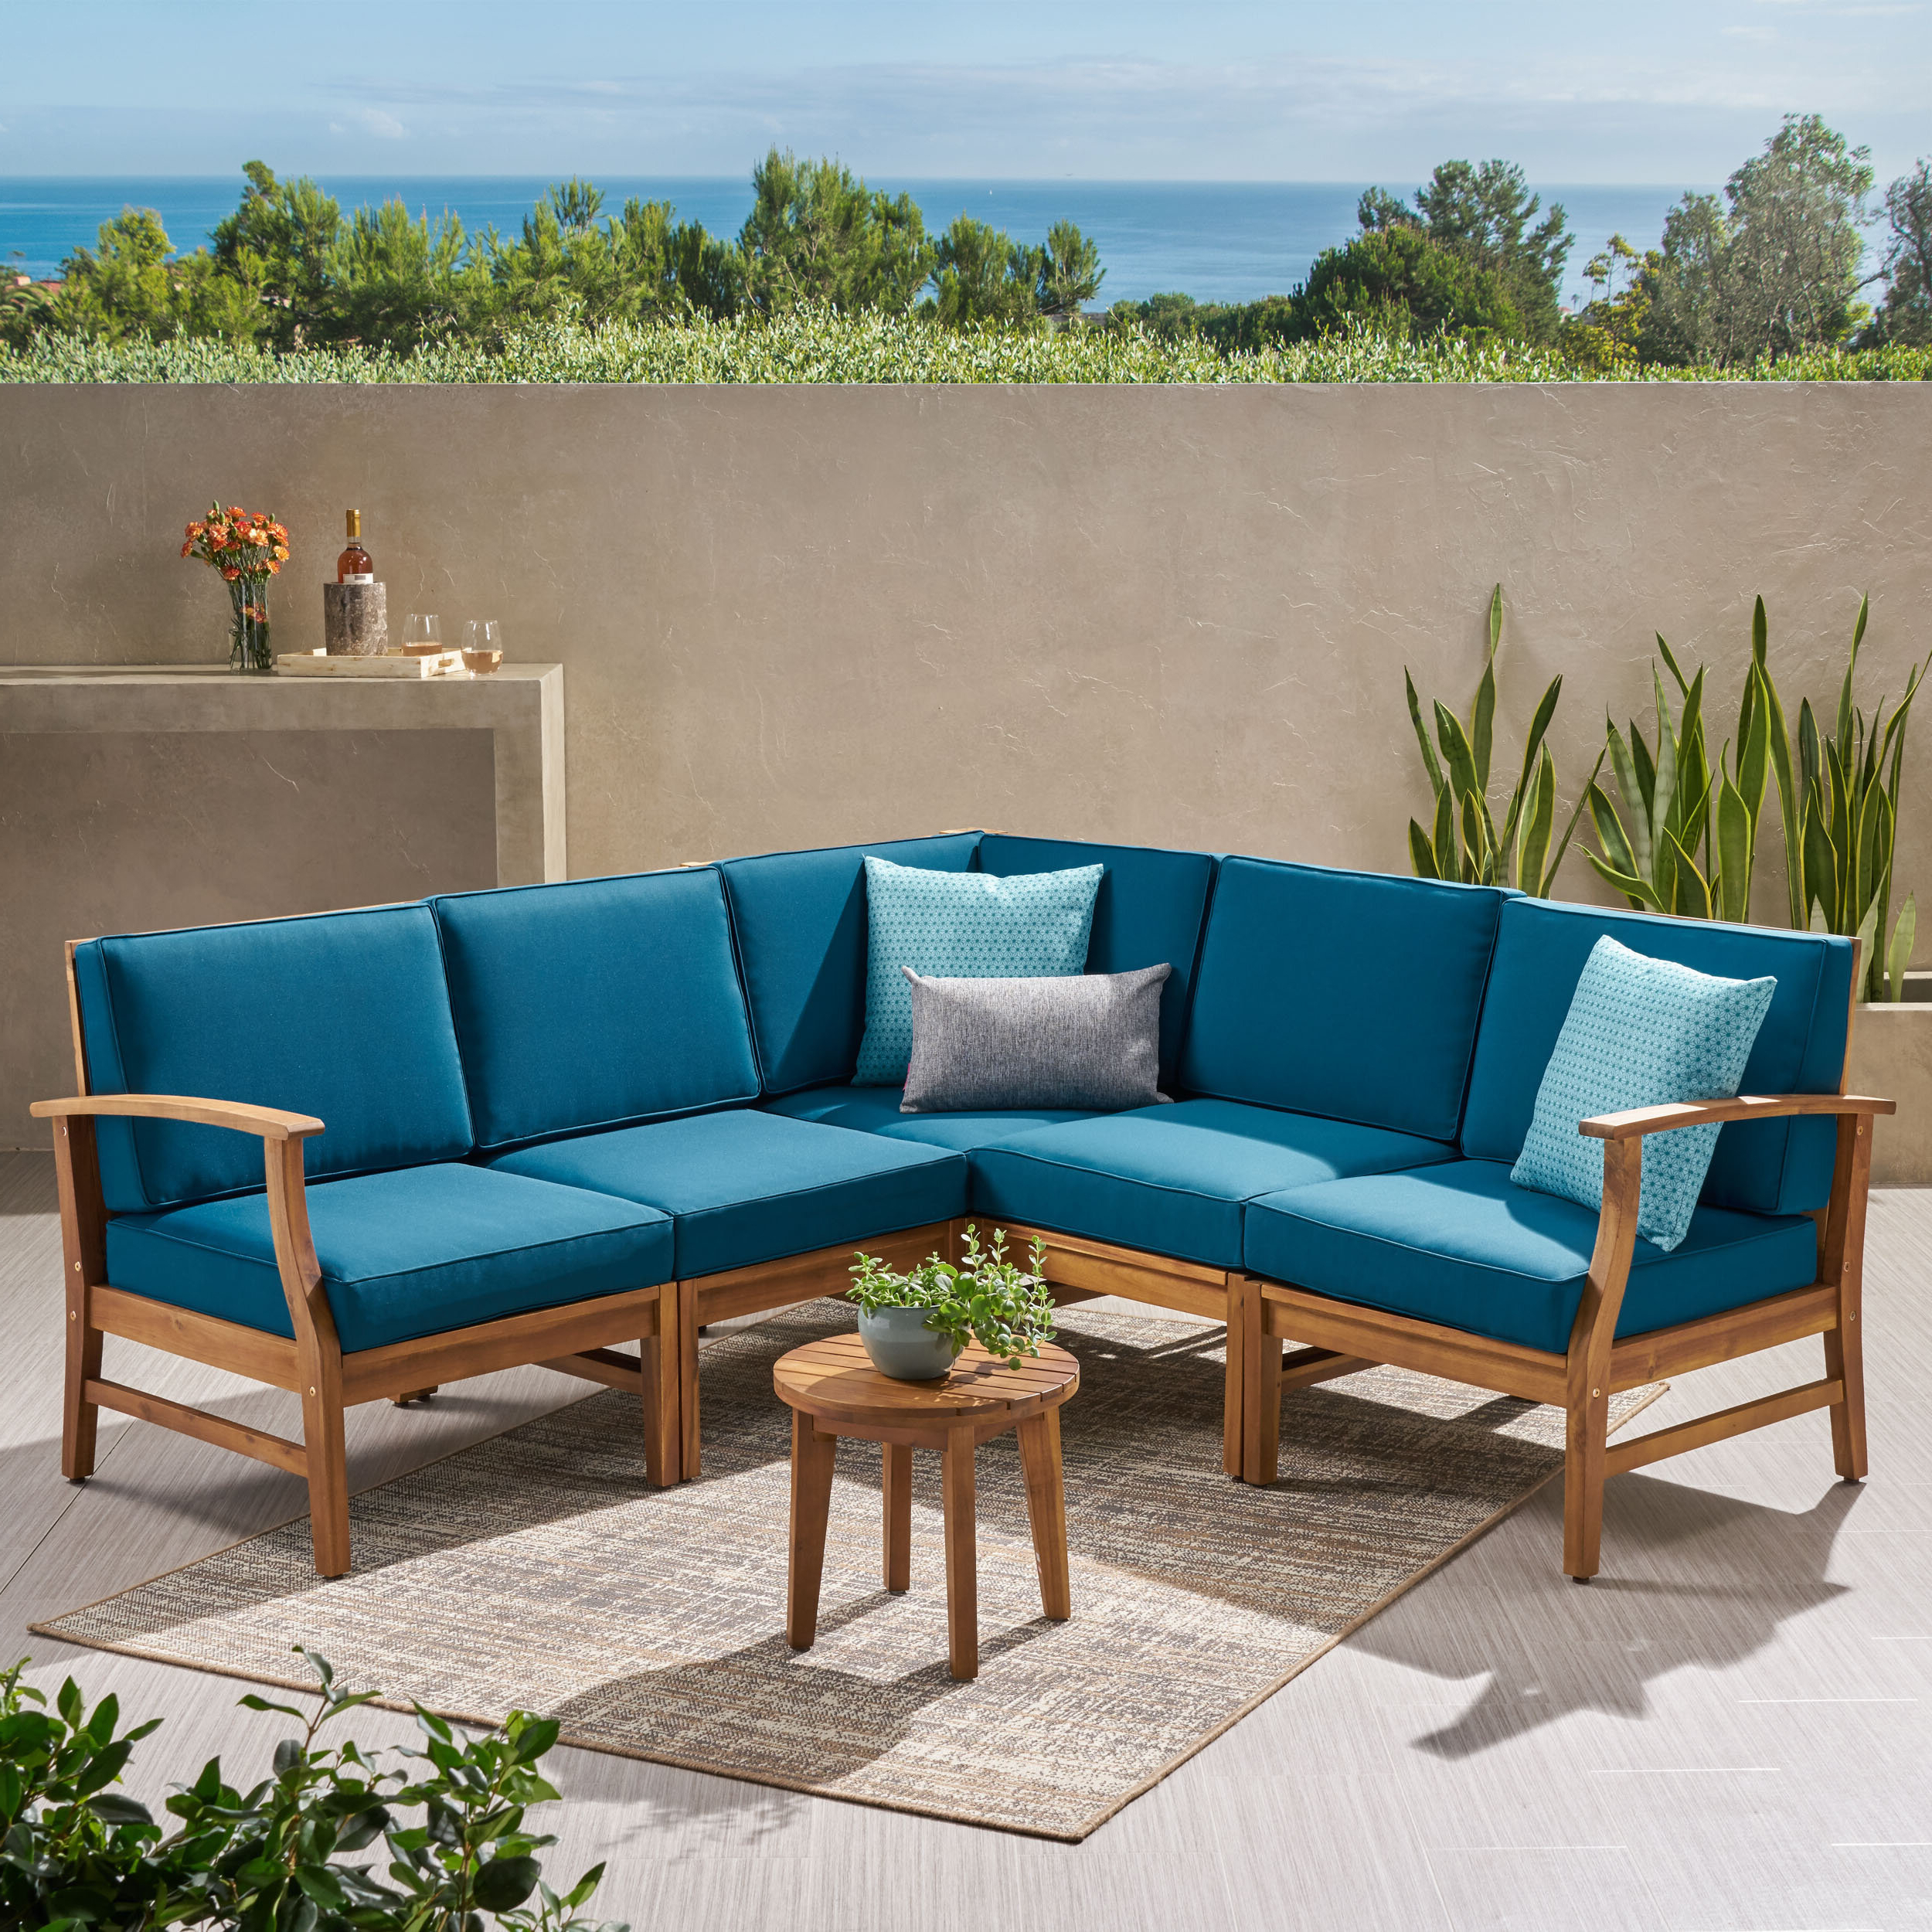 Hursey Patio Sectionals Inside Latest Antonia Teak Patio Sectional With Cushions (Gallery 6 of 20)